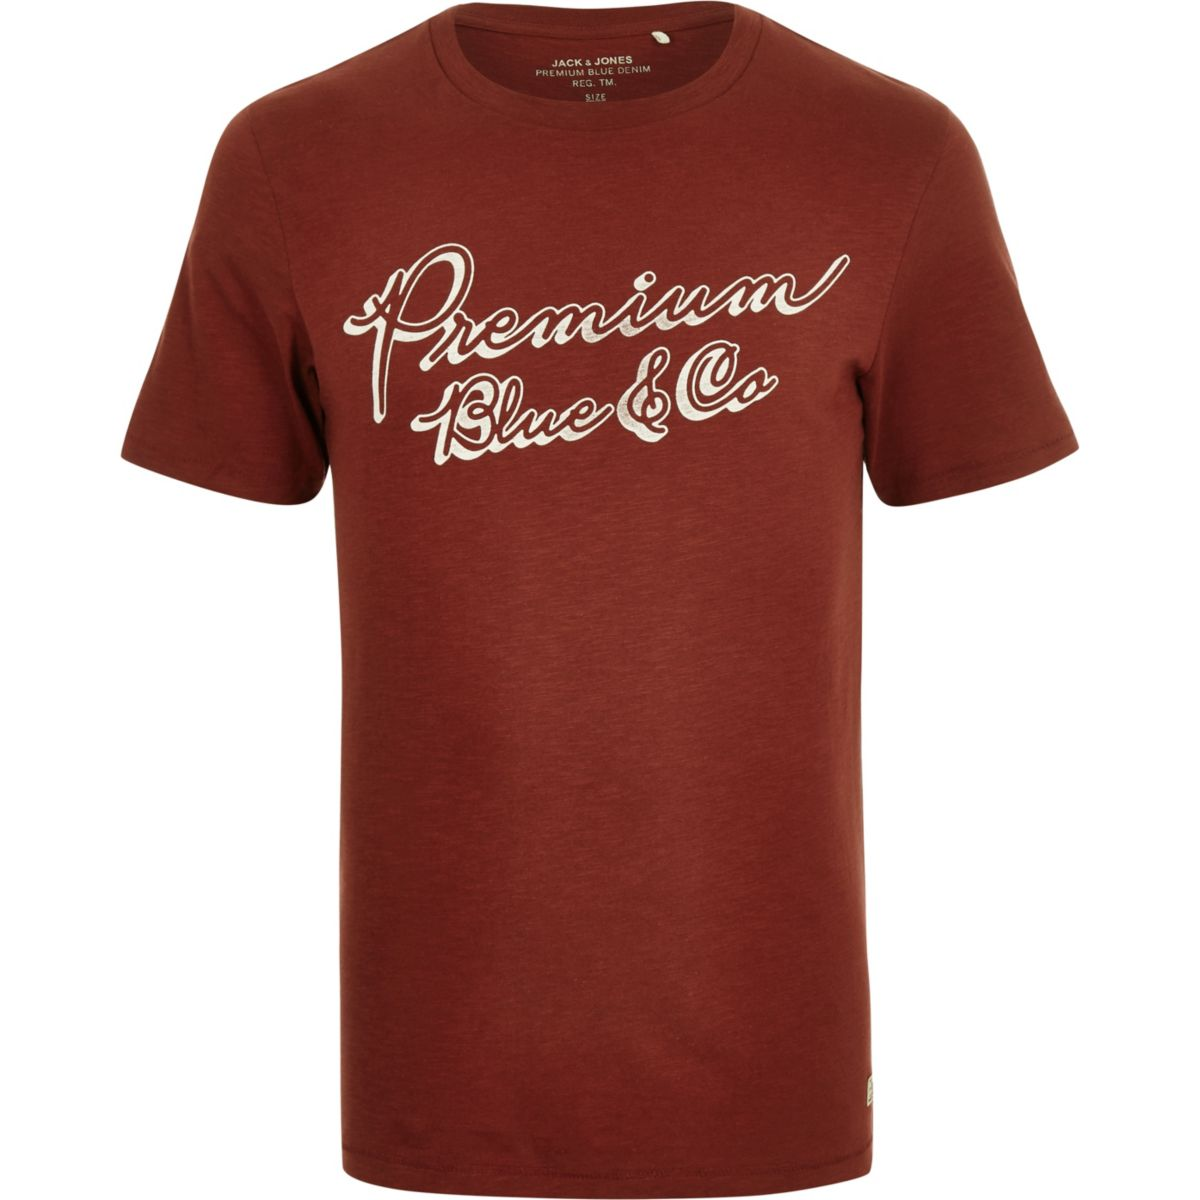 Jack & Jones Premium brown print T-shirt